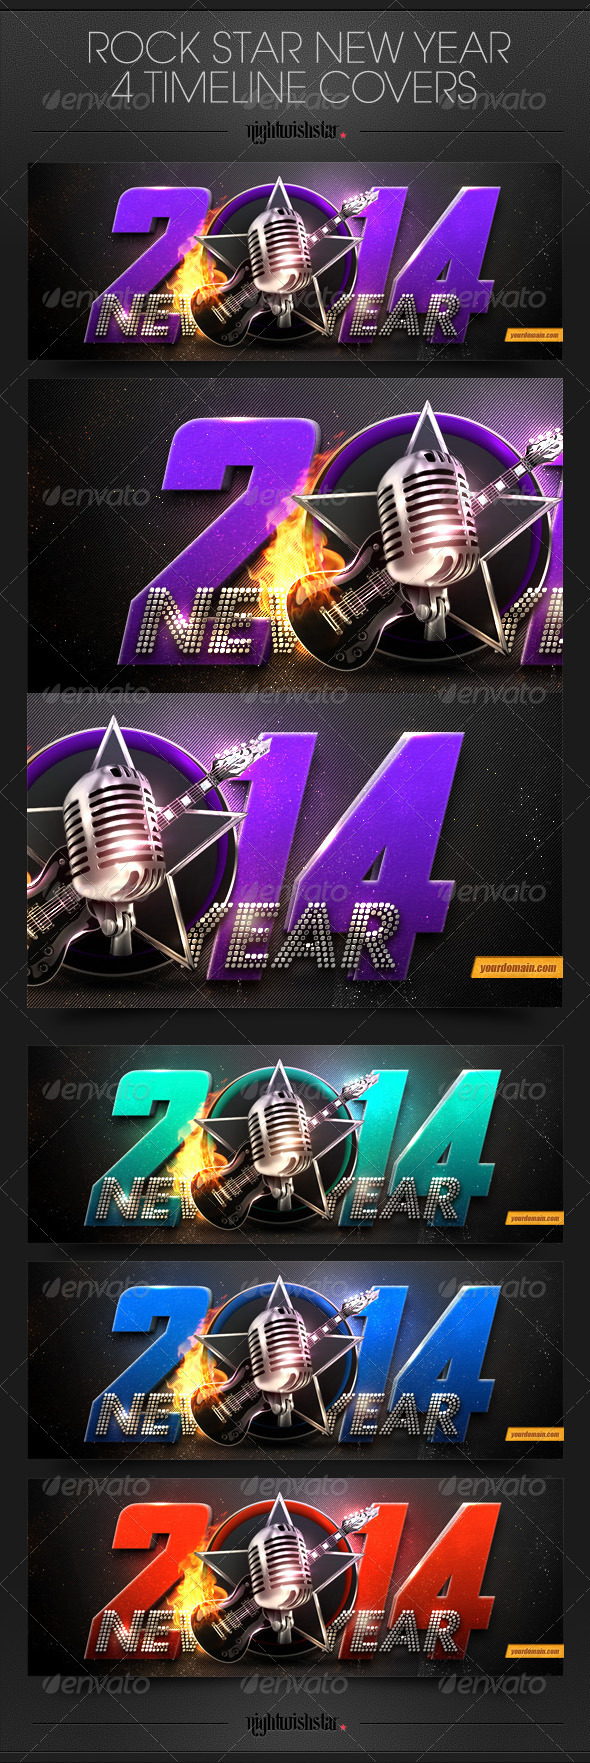 GraphicRiver New Year Rock Stars Timeline Cover 6477915